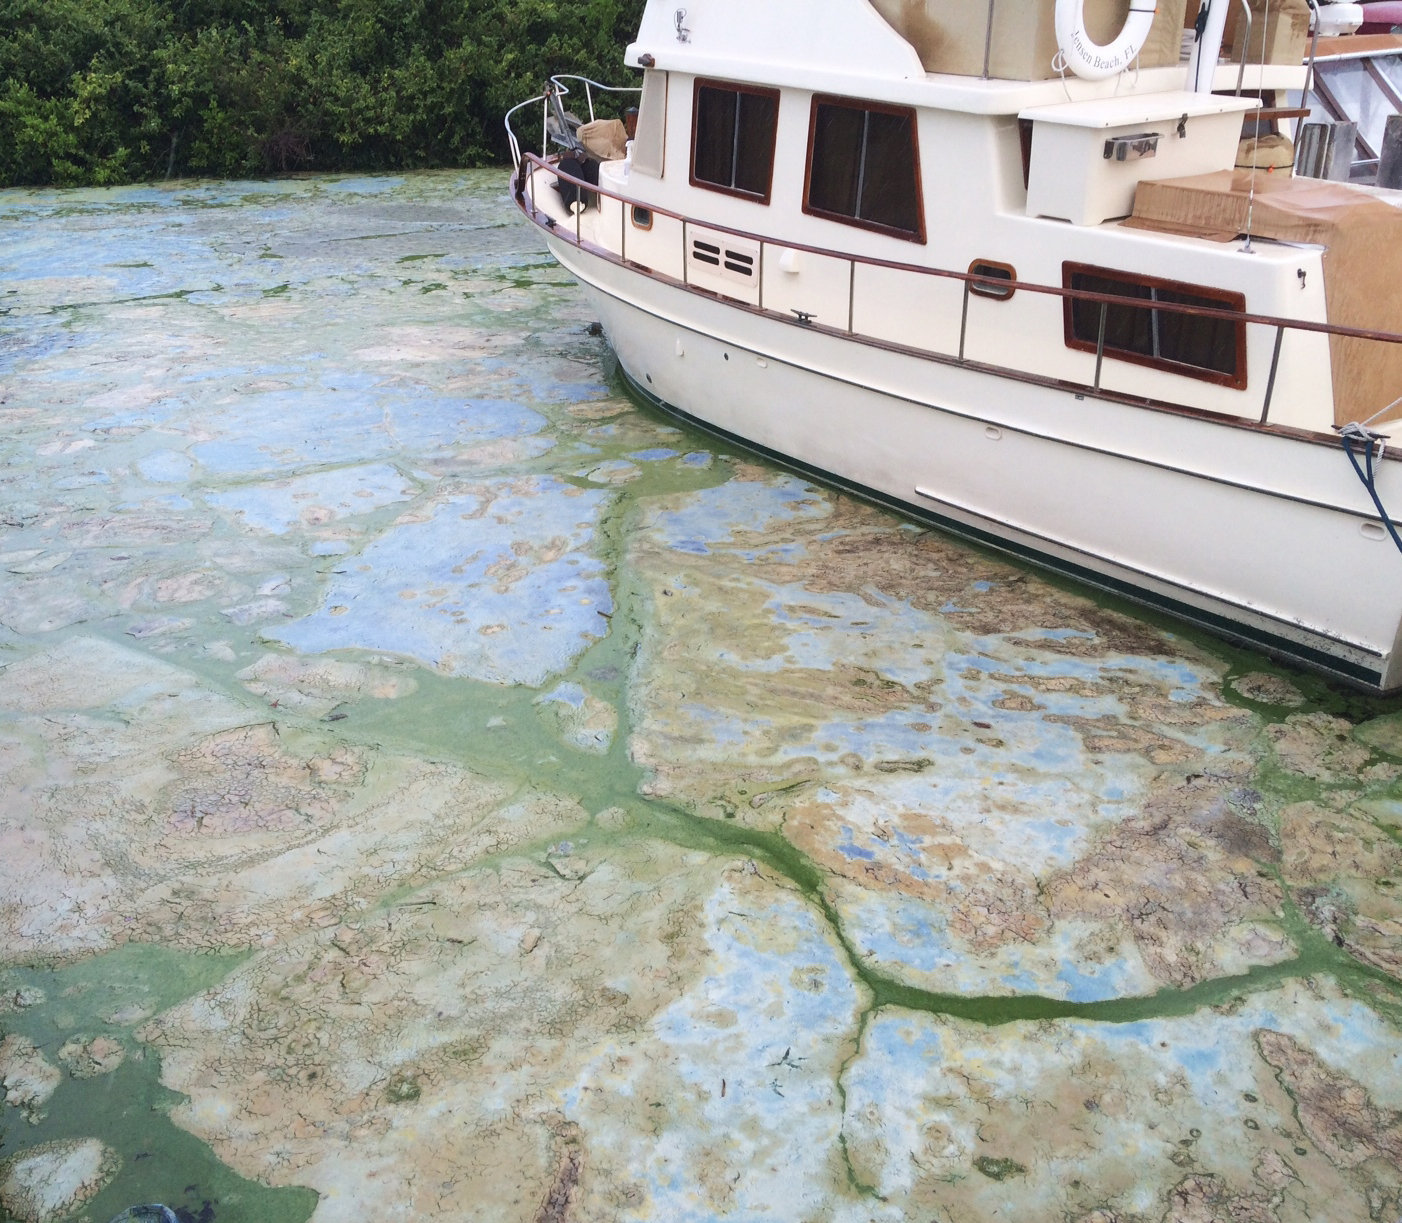 Florida Toxic Algae - July 2016